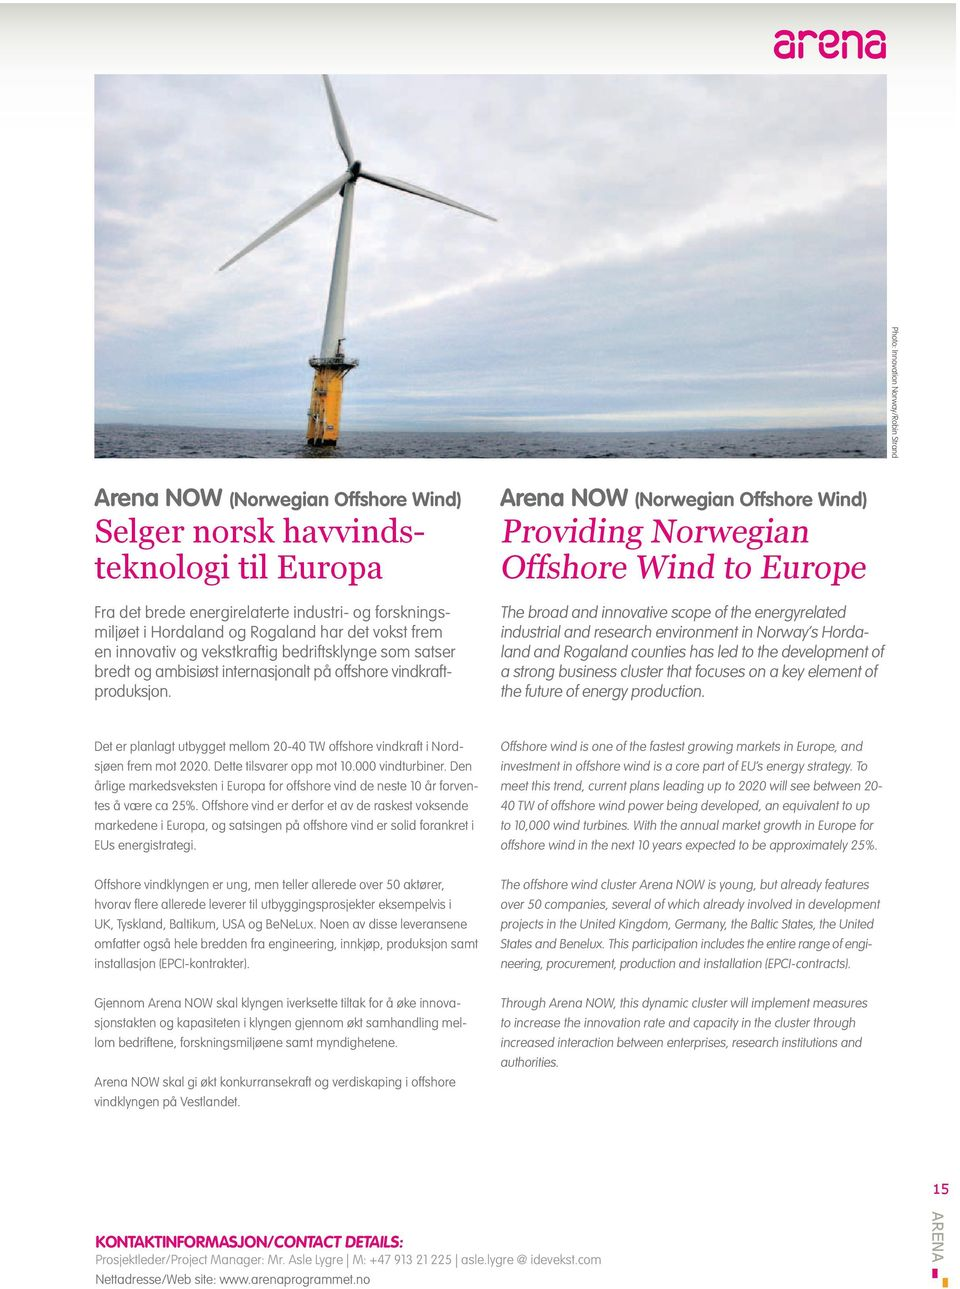 Arena NOW (Norwegian Offshore Wind) Providing Norwegian Offshore Wind to Europe The broad and innovative scope of the energyrelated industrial and research environment in Norway s Hordaland and